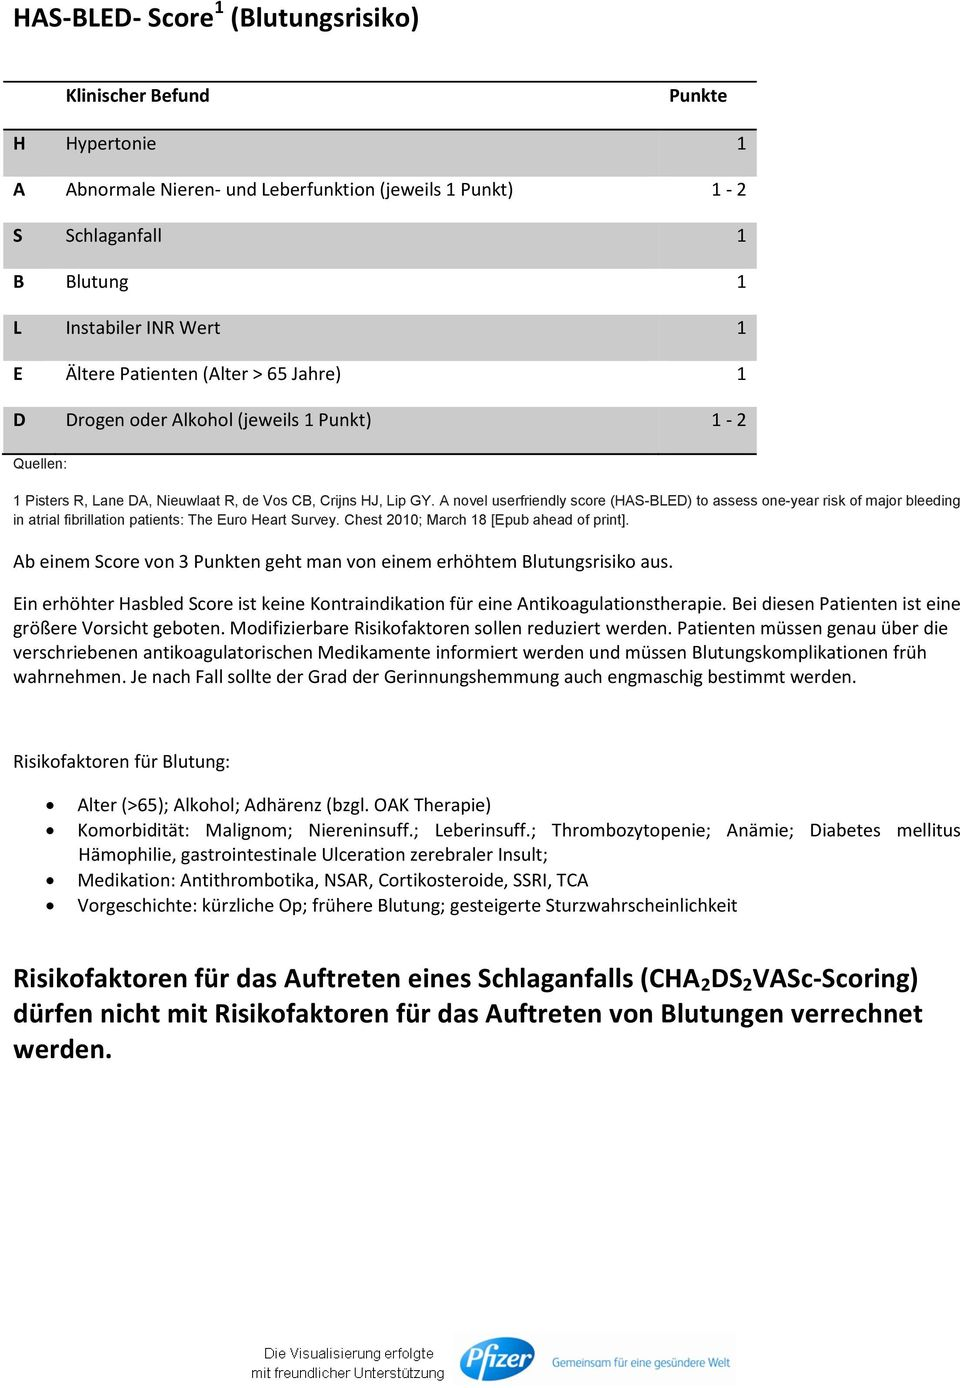 A novel userfriendly score (HAS-BLED) to assess one-year risk of major bleeding in atrial fibrillation patients: The Euro Heart Survey. Chest 2010; March 18 [Epub ahead of print].